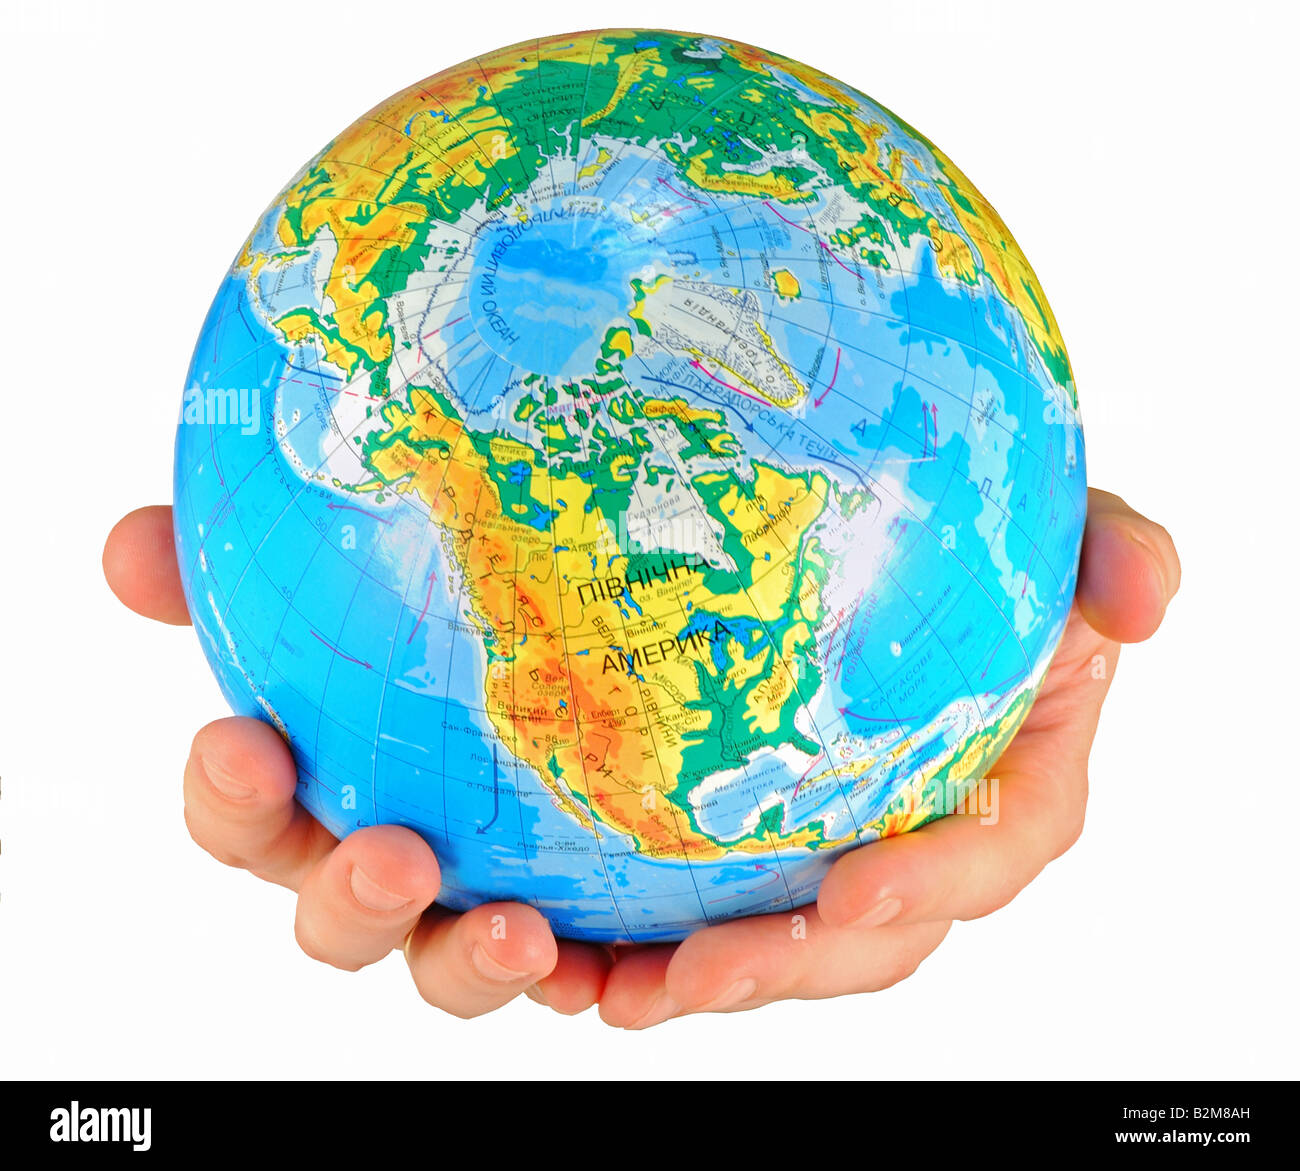 image of earth in woman s nands - Stock Image